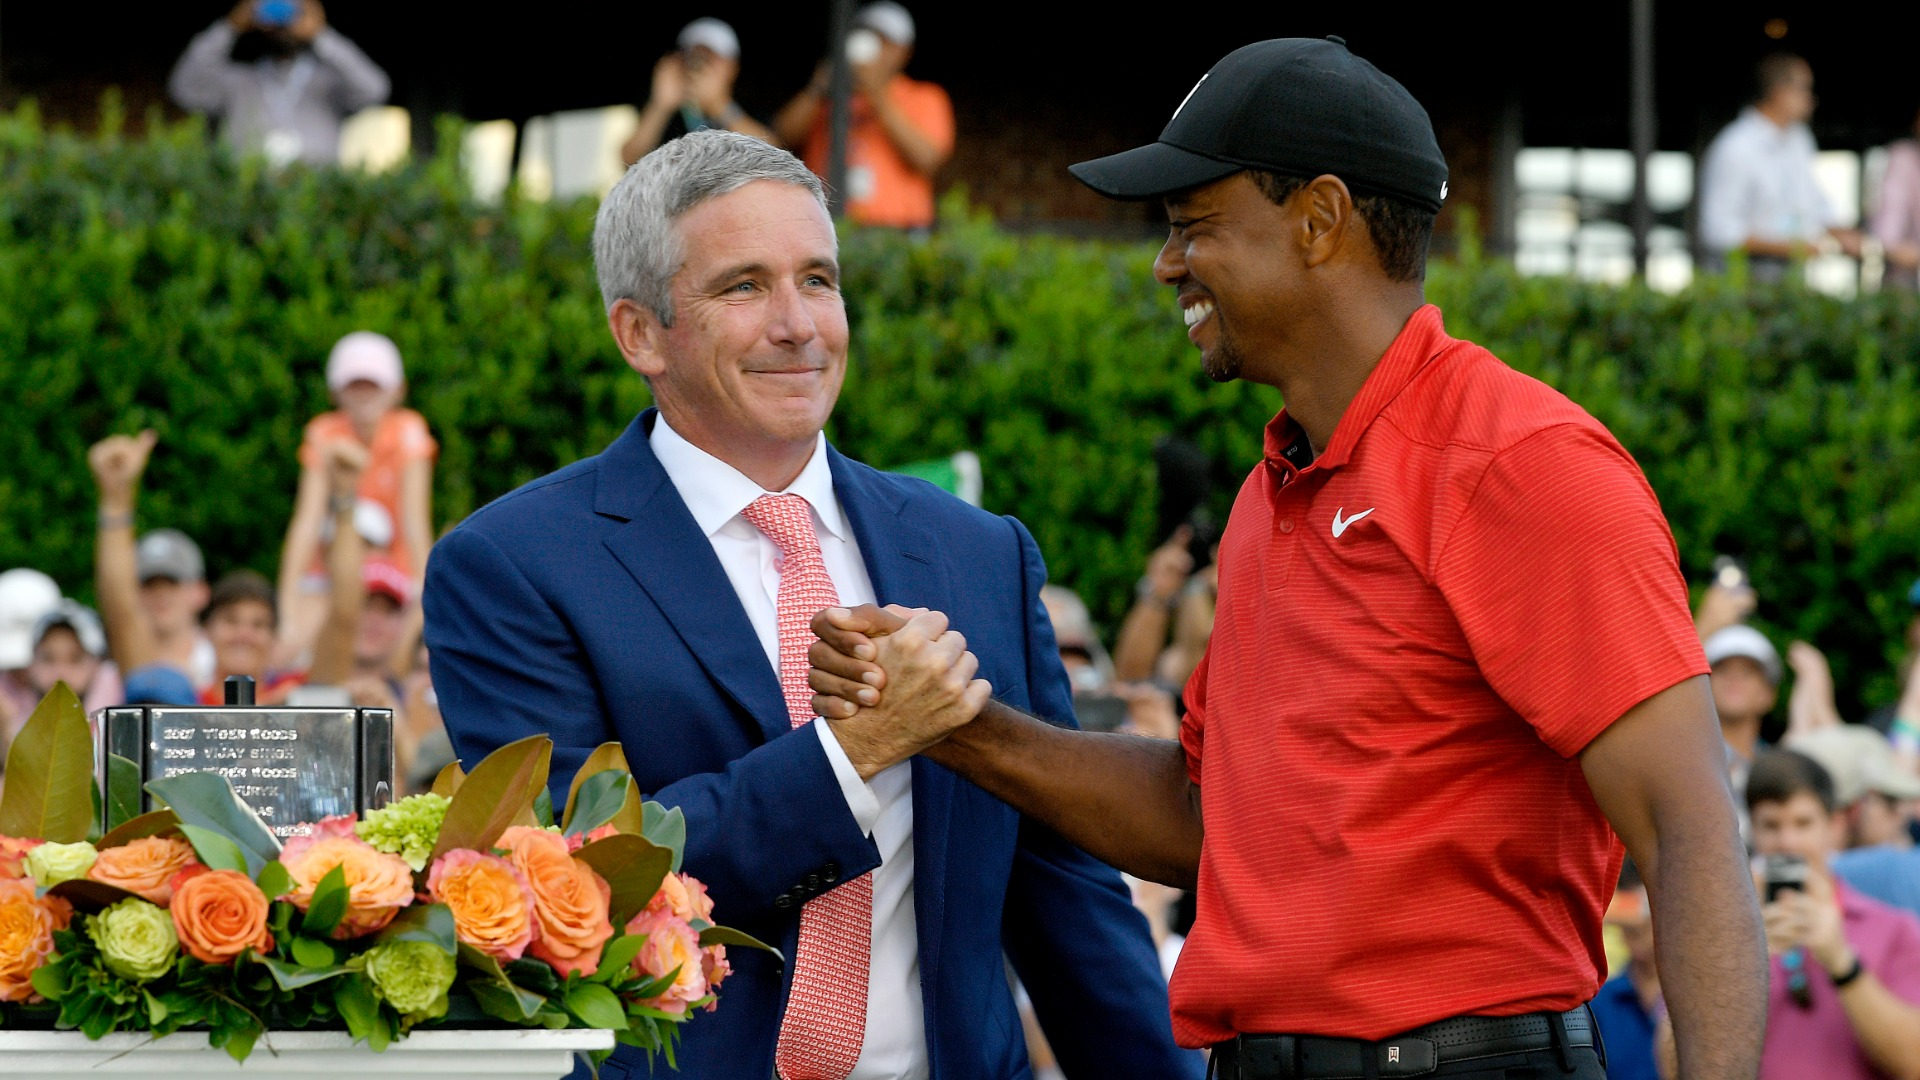 Tiger Woods in hospital:  PGA TOUR commissioner says the world will rally around golf legend